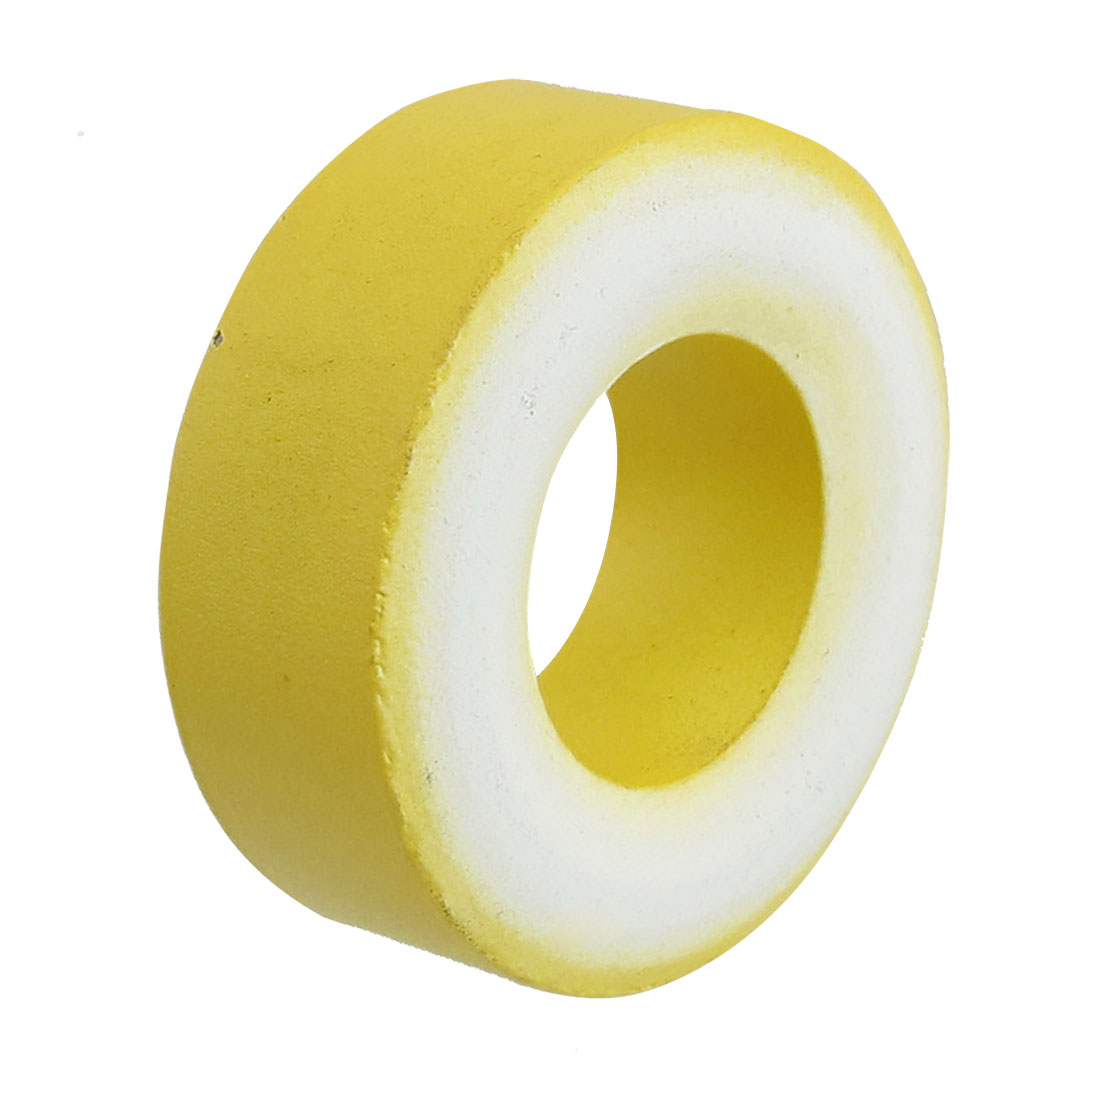 47mm x 24mm x 18mm Yellow White Iron Core Power Inductor Ferrite Ring